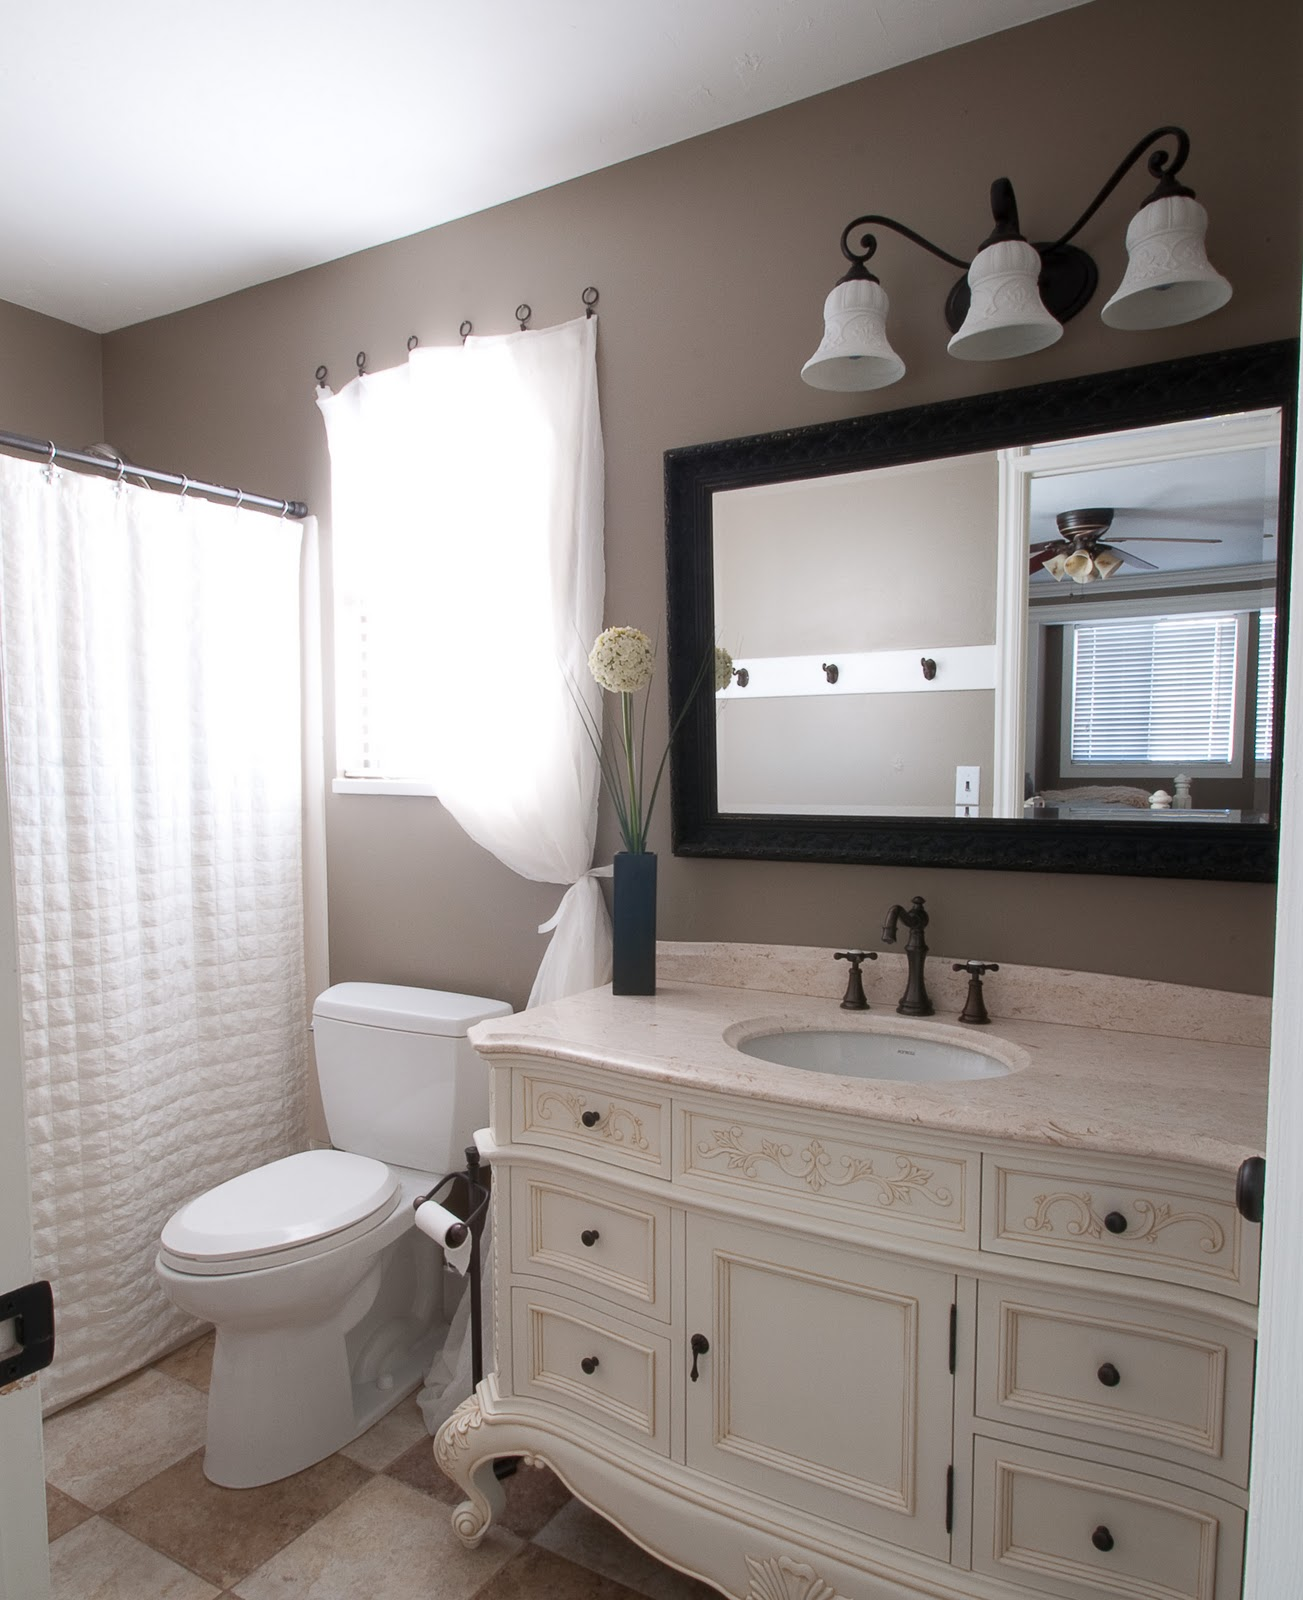 Start at home bathroom redo for Redo bathroom ideas